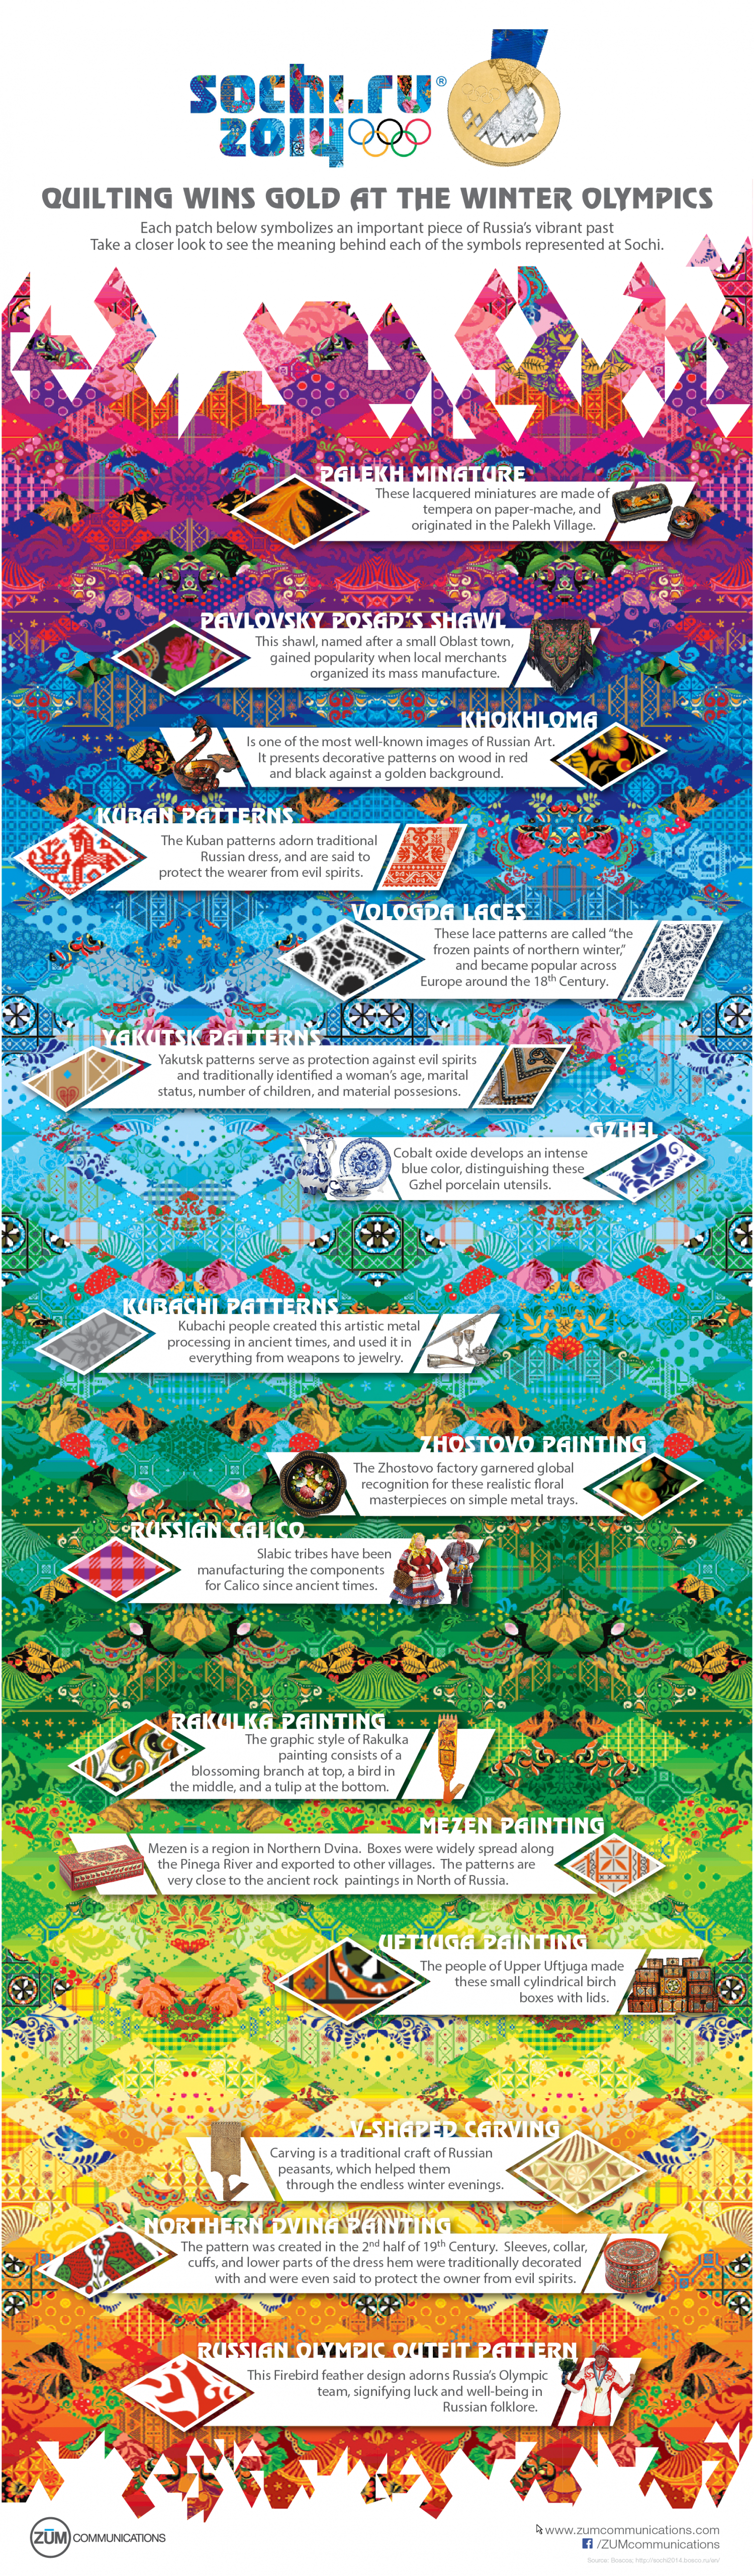 Quilting Wins Gold at the Winter Olympics Infographic